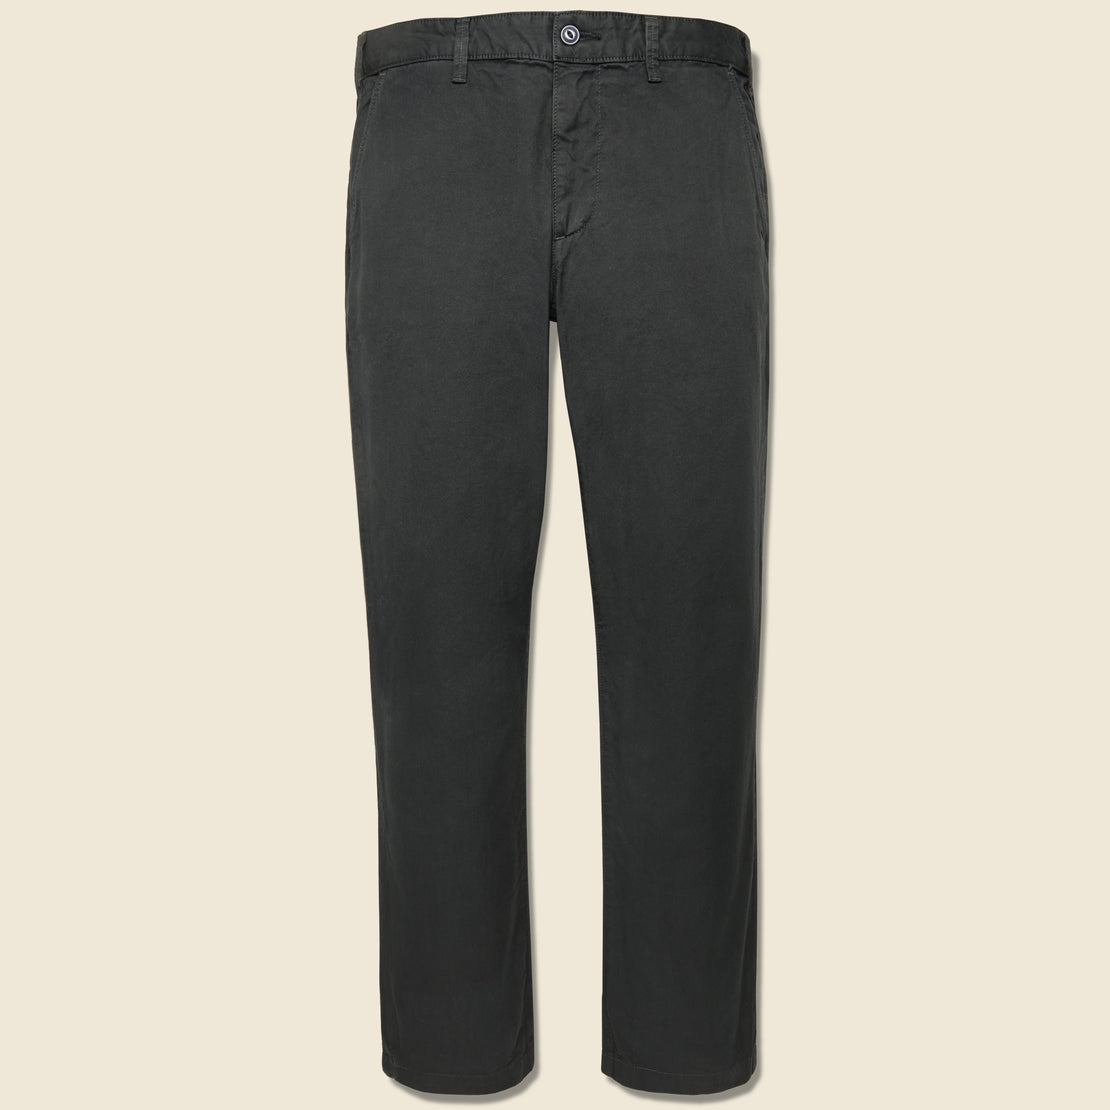 Save Khaki Twill Standard Chino - Black